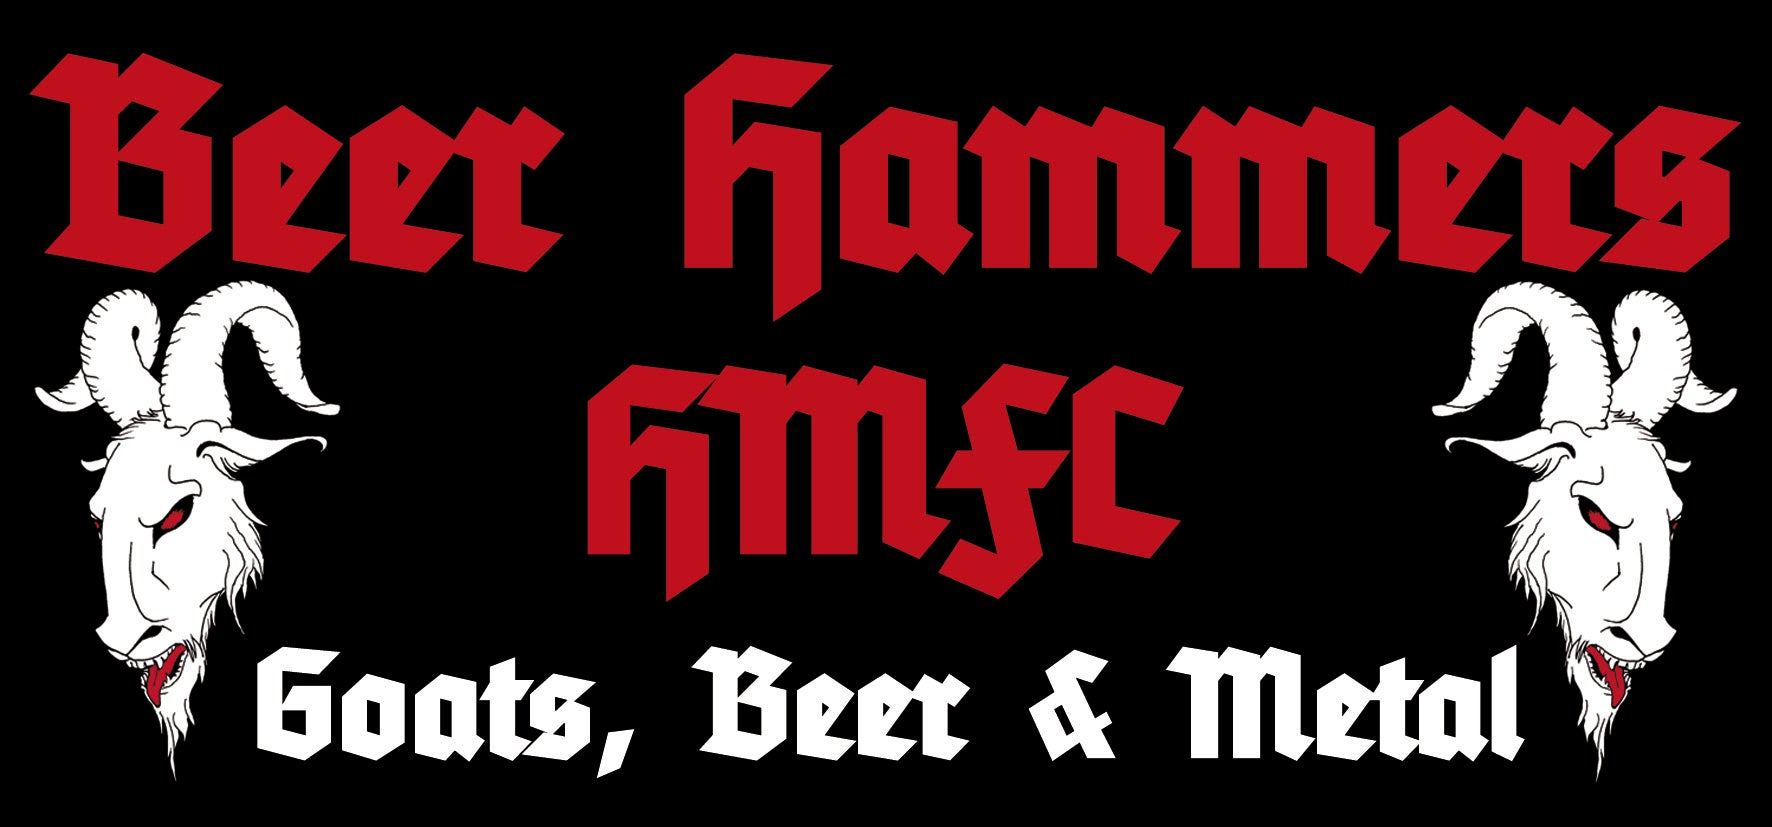 Beer Hammers HMFC